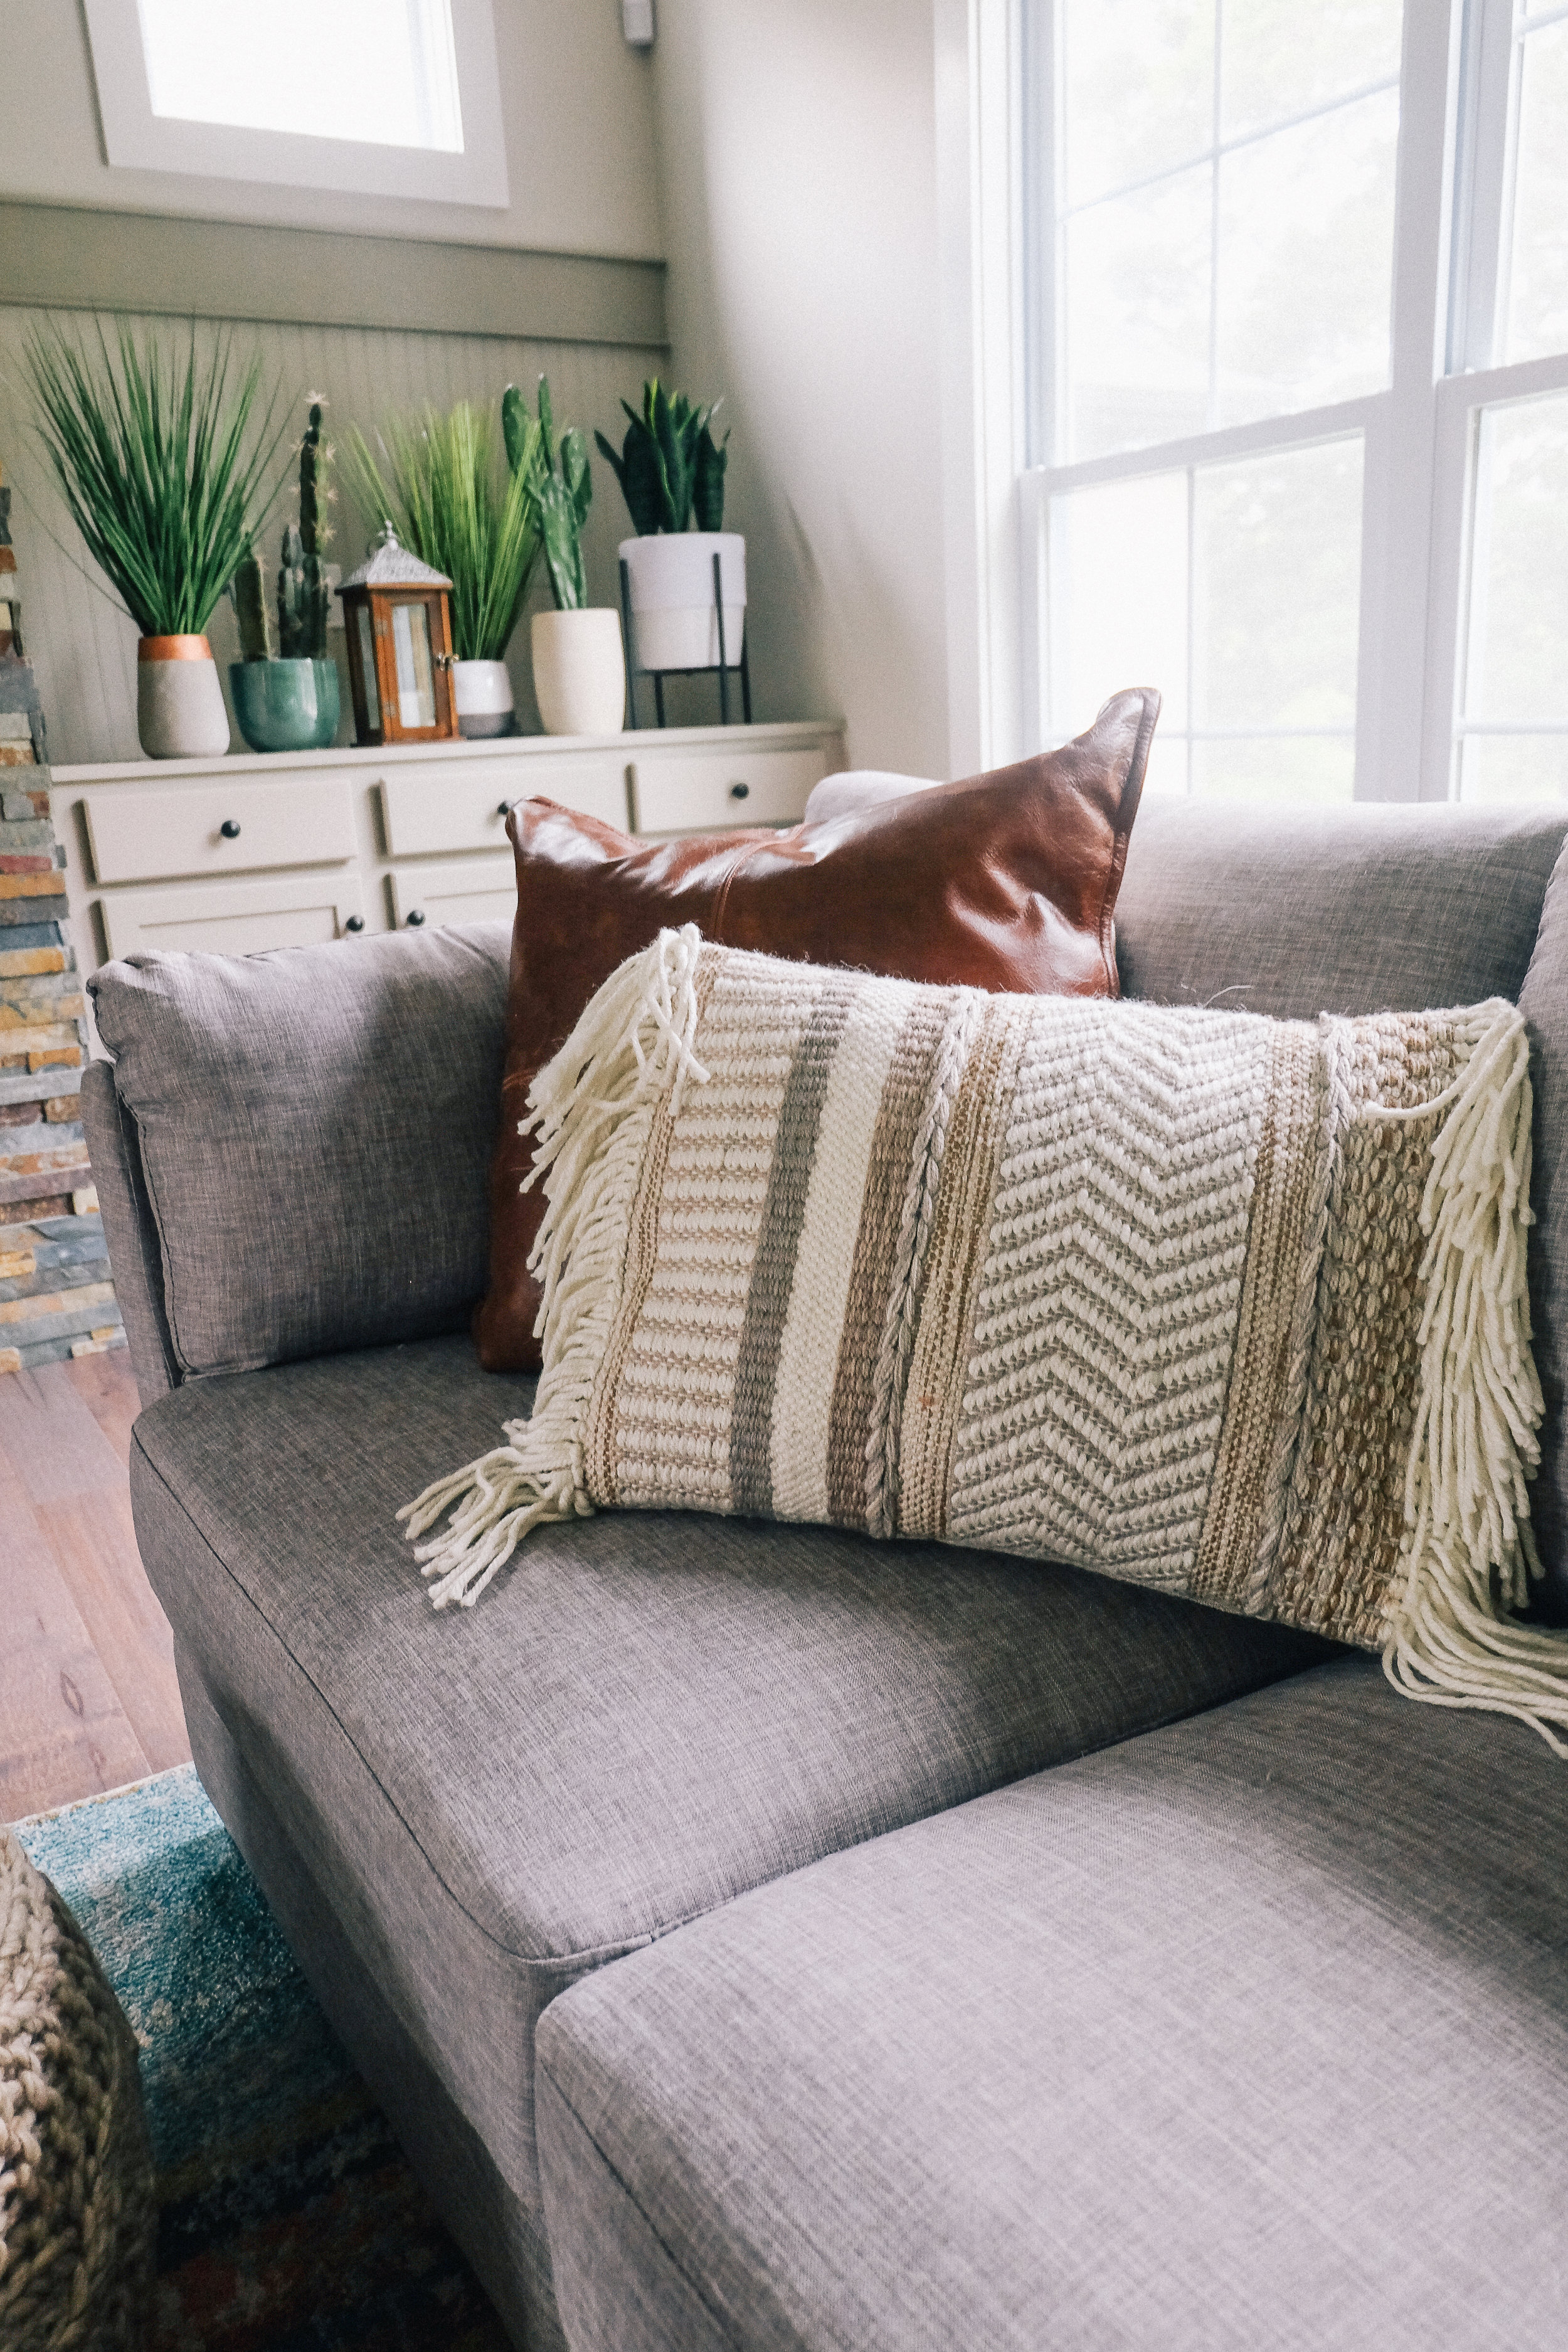 Cozy Living Room Reveal With World Market via chelceytate.com